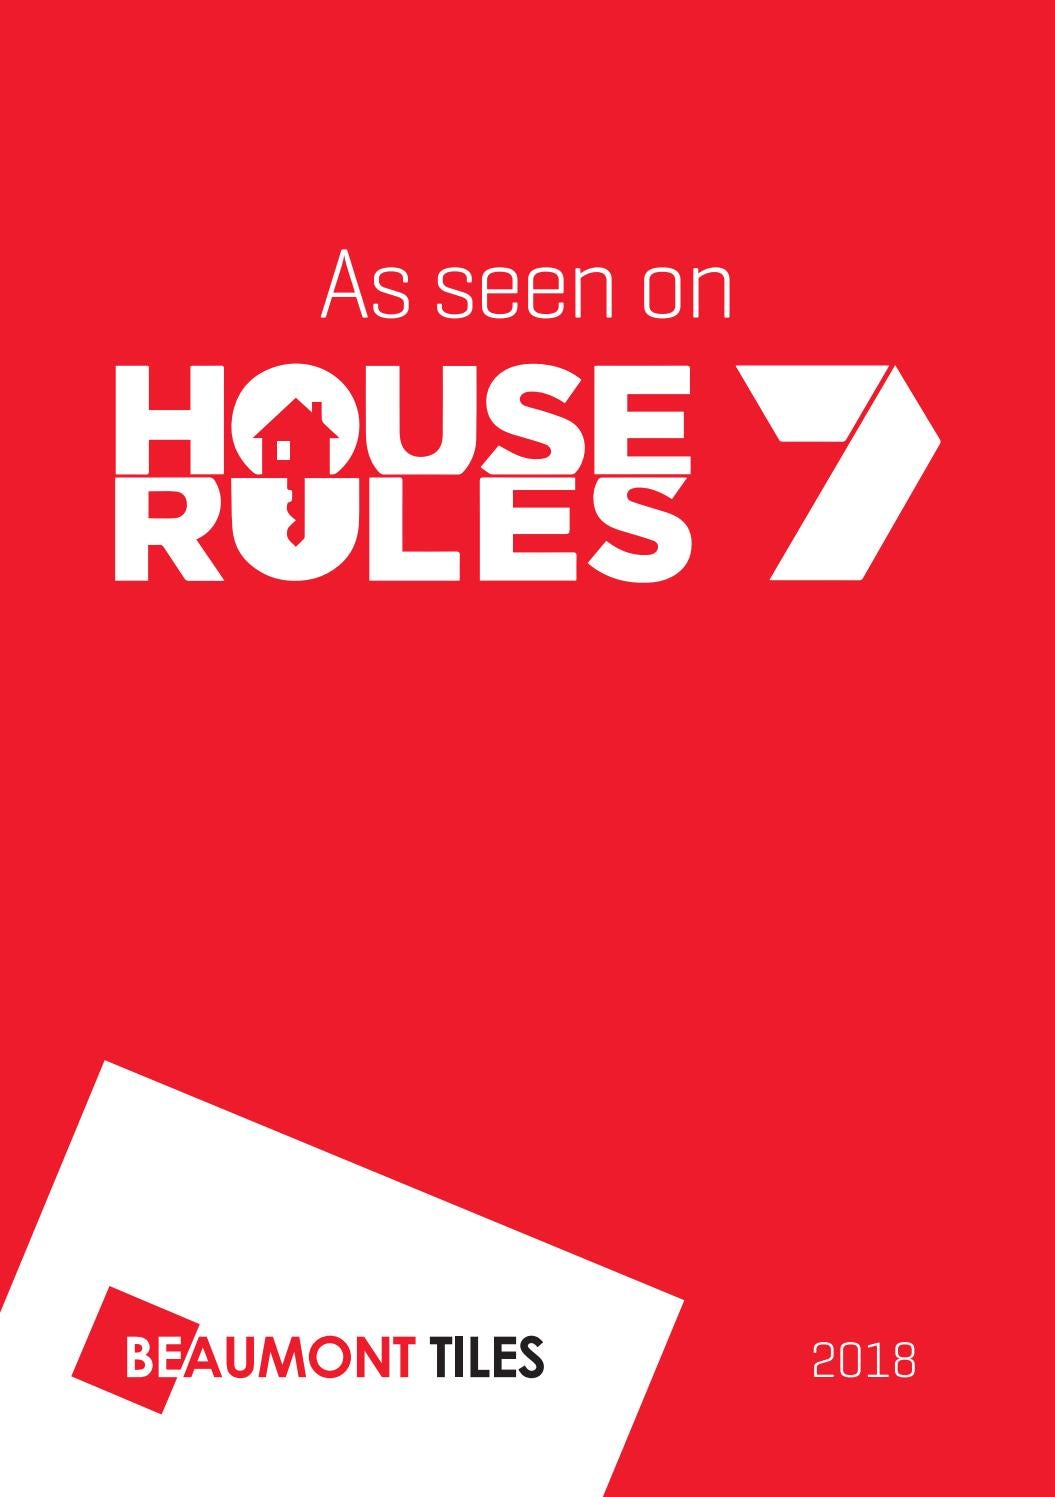 house rules 2018 by beaumont tiles